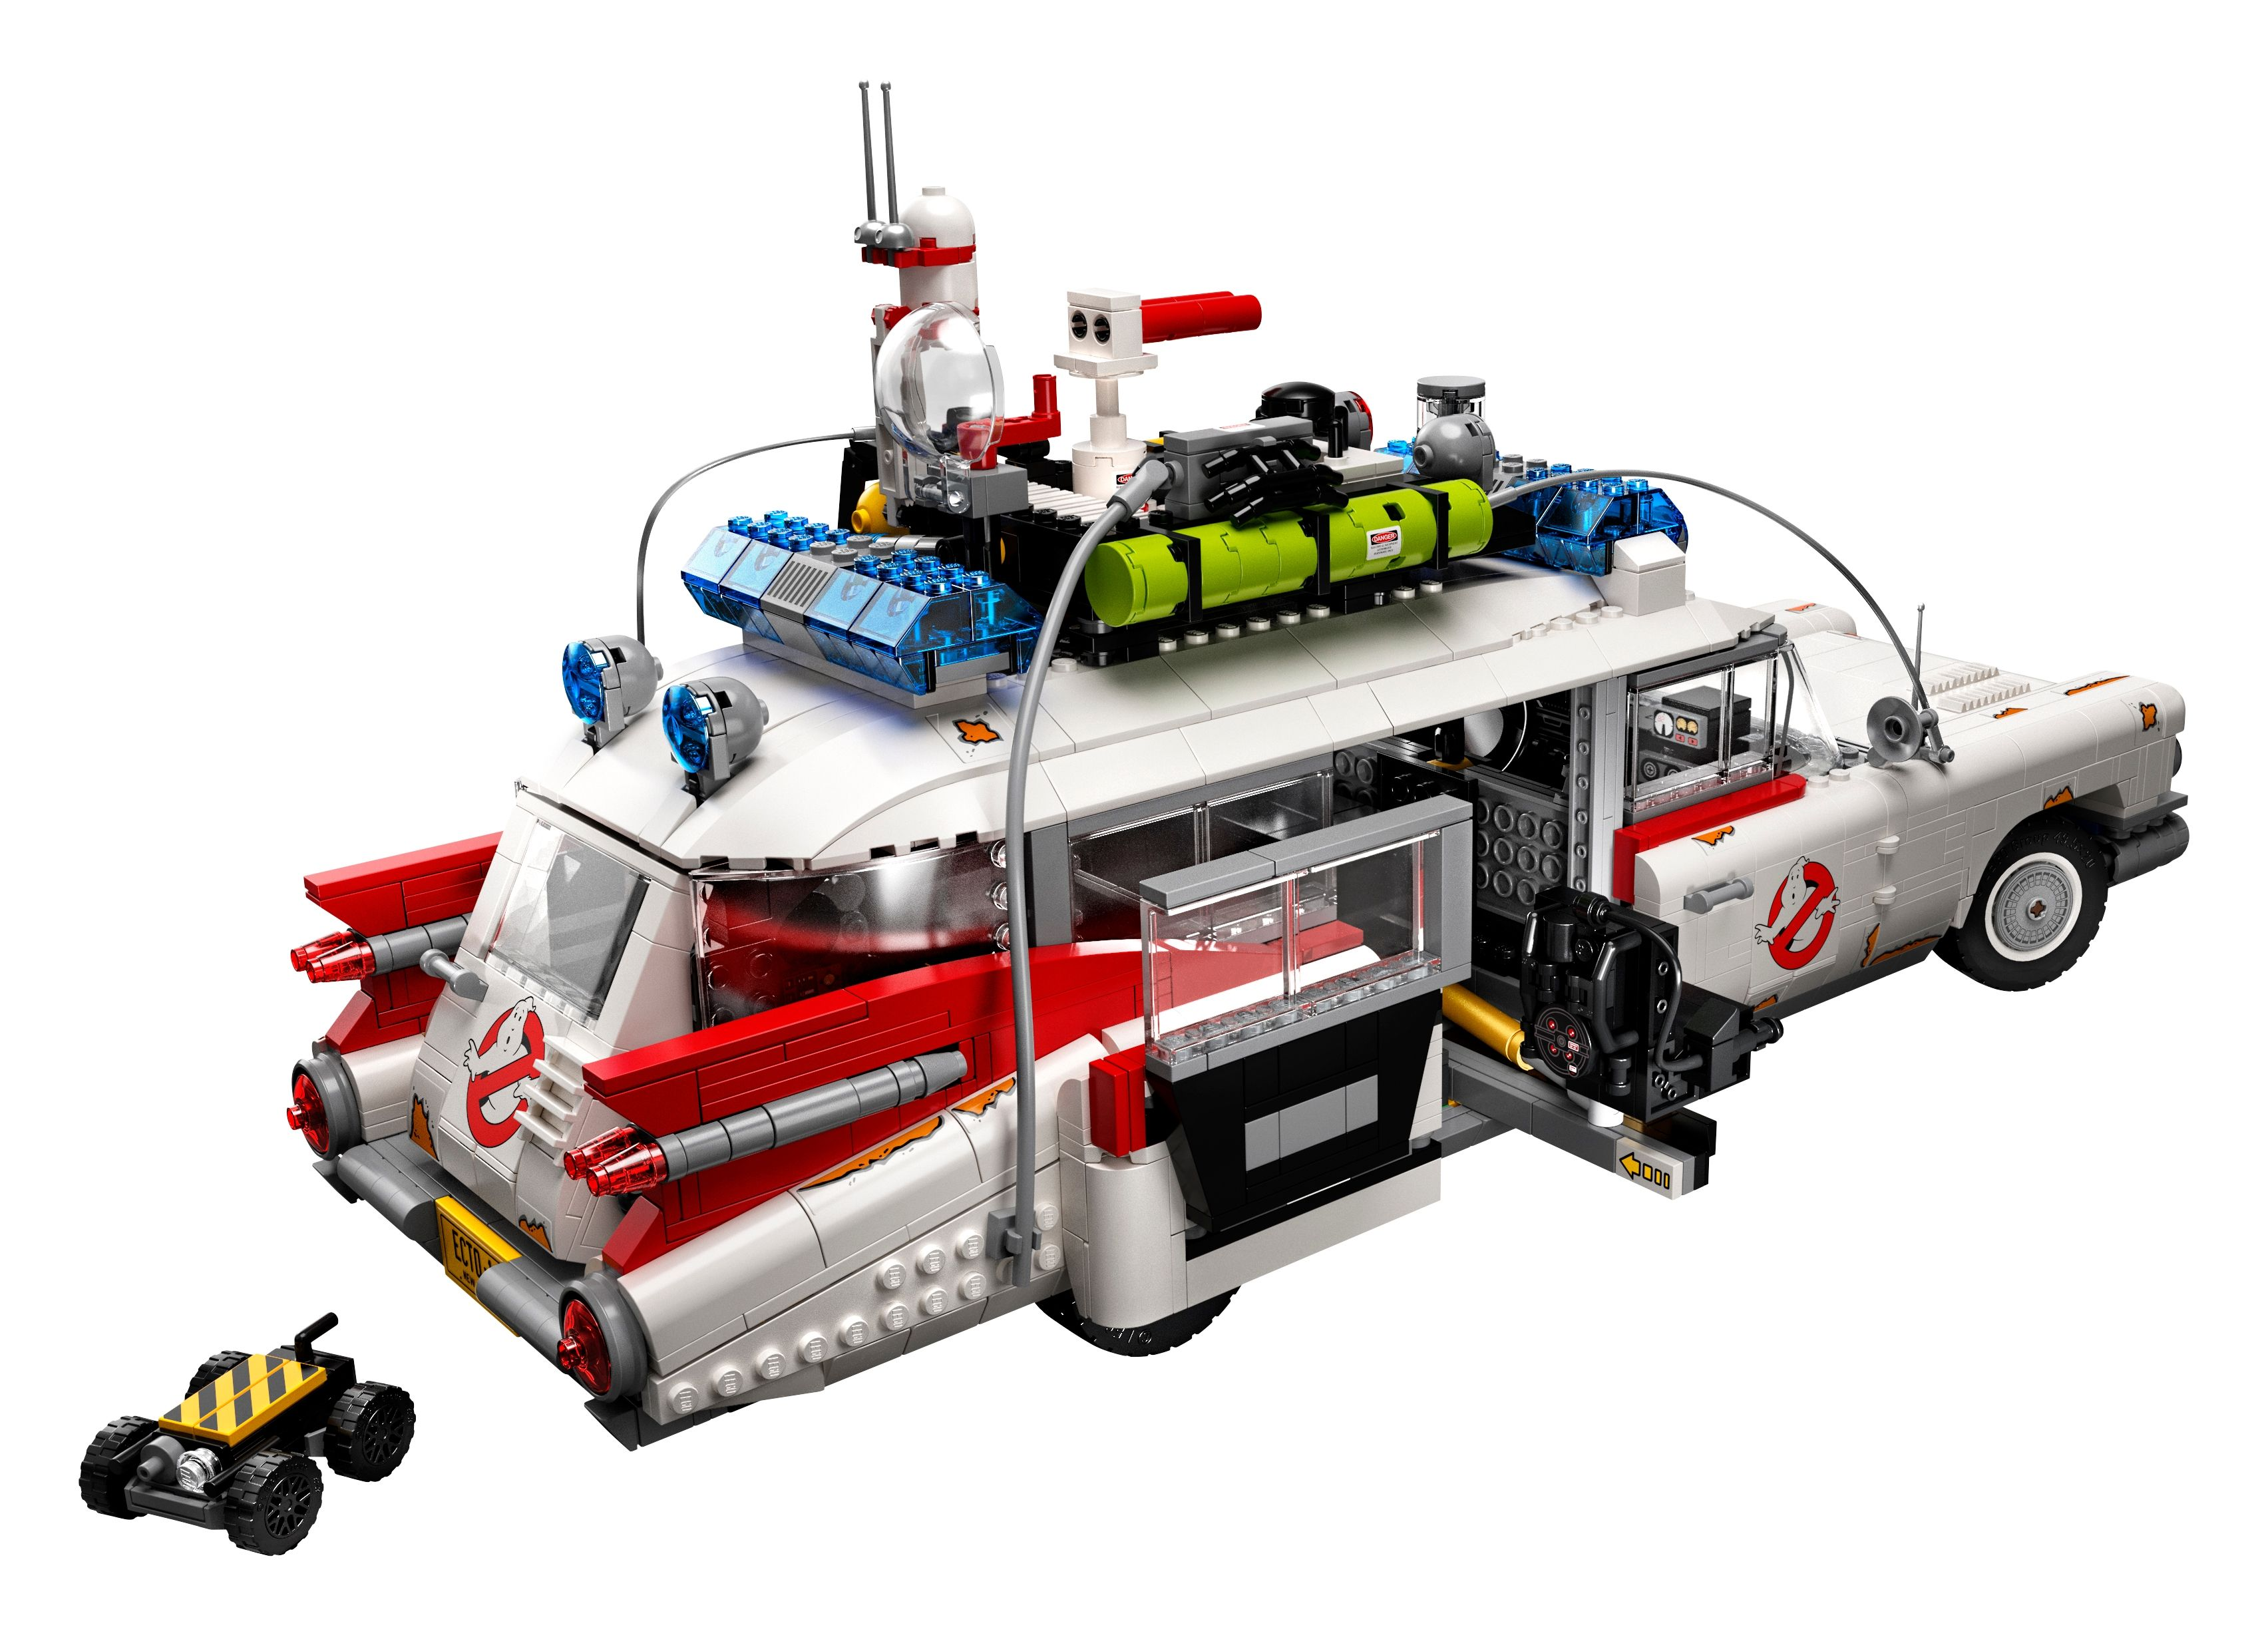 LEGO Advanced Models 10274 Ghostbusters™ ECTO-1 LEGO_10274_alt5.jpg